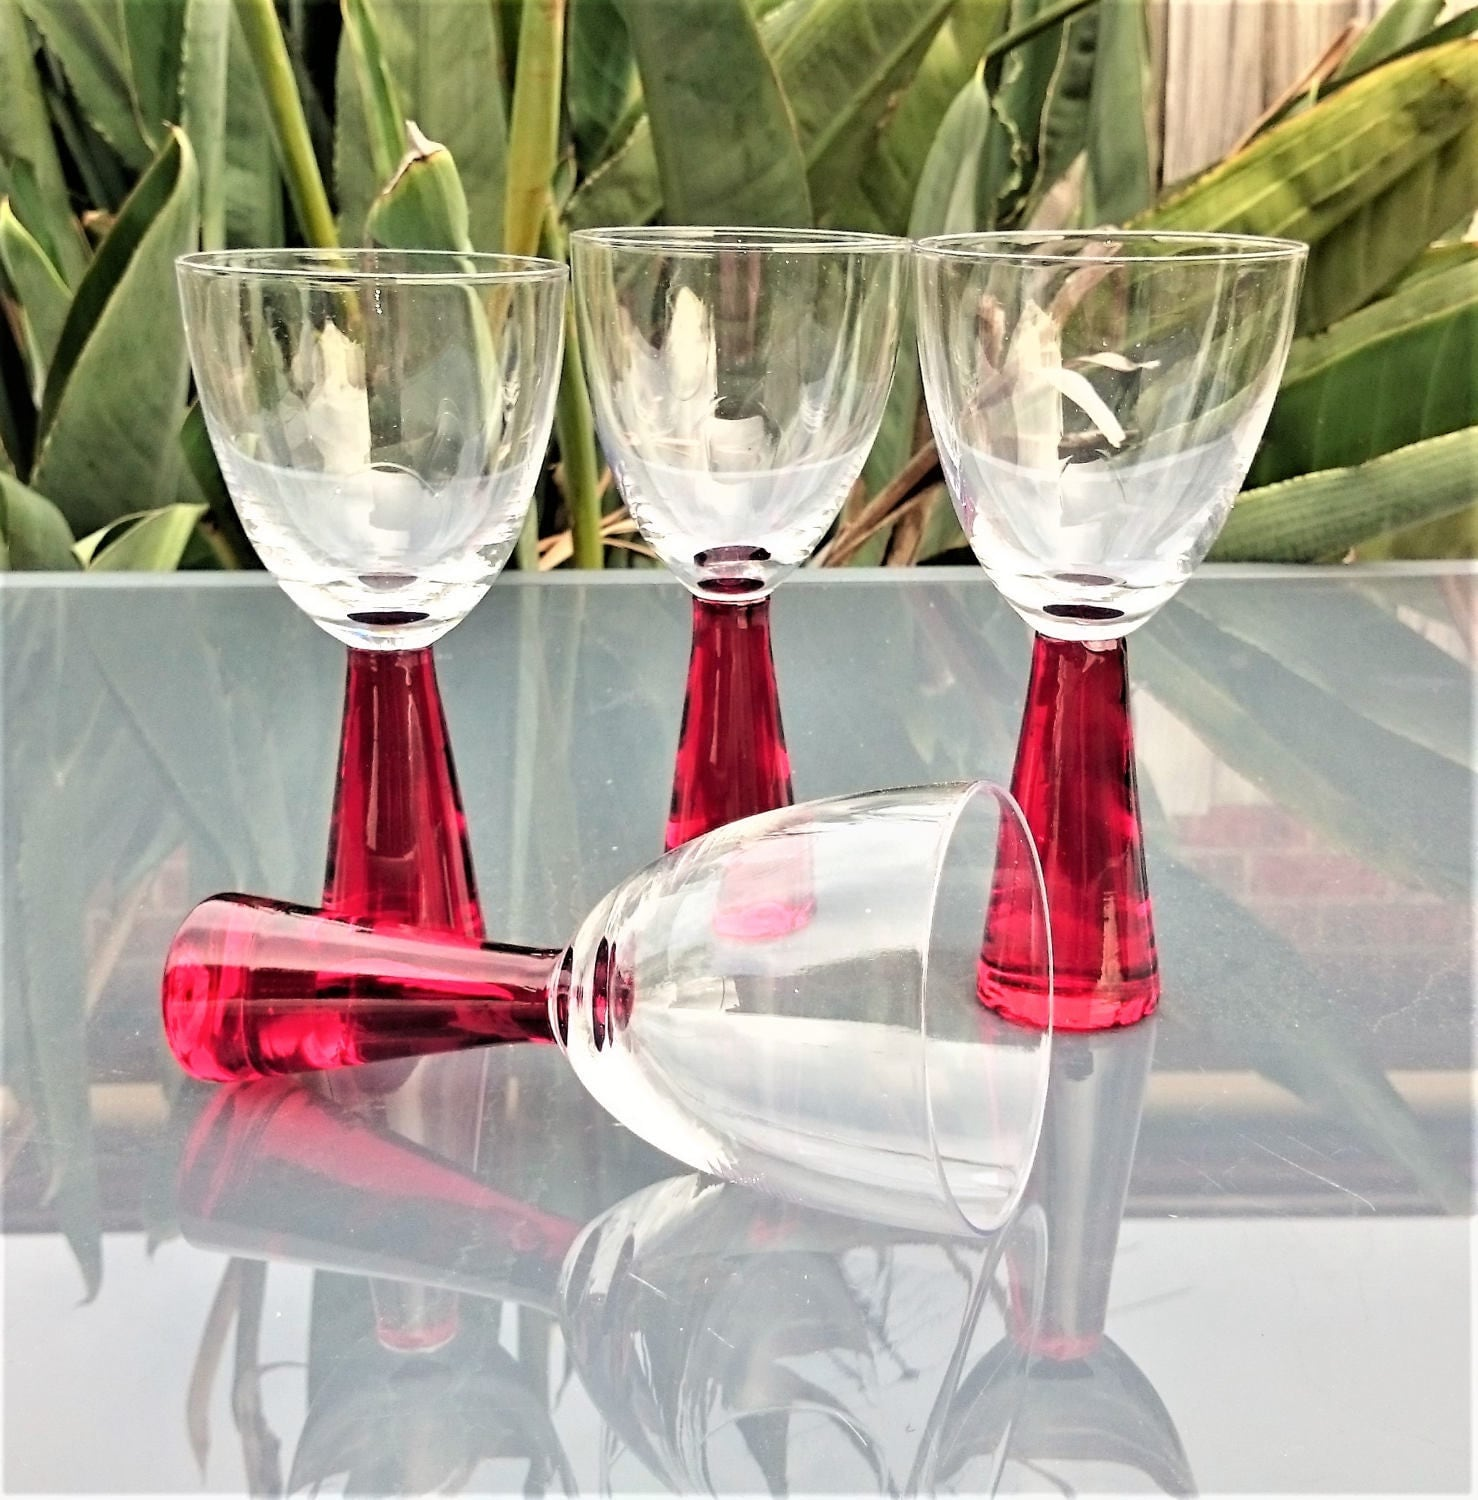 Vintage red thick stem wine glasses set of 4 551c - Wine glasses with thick stems ...